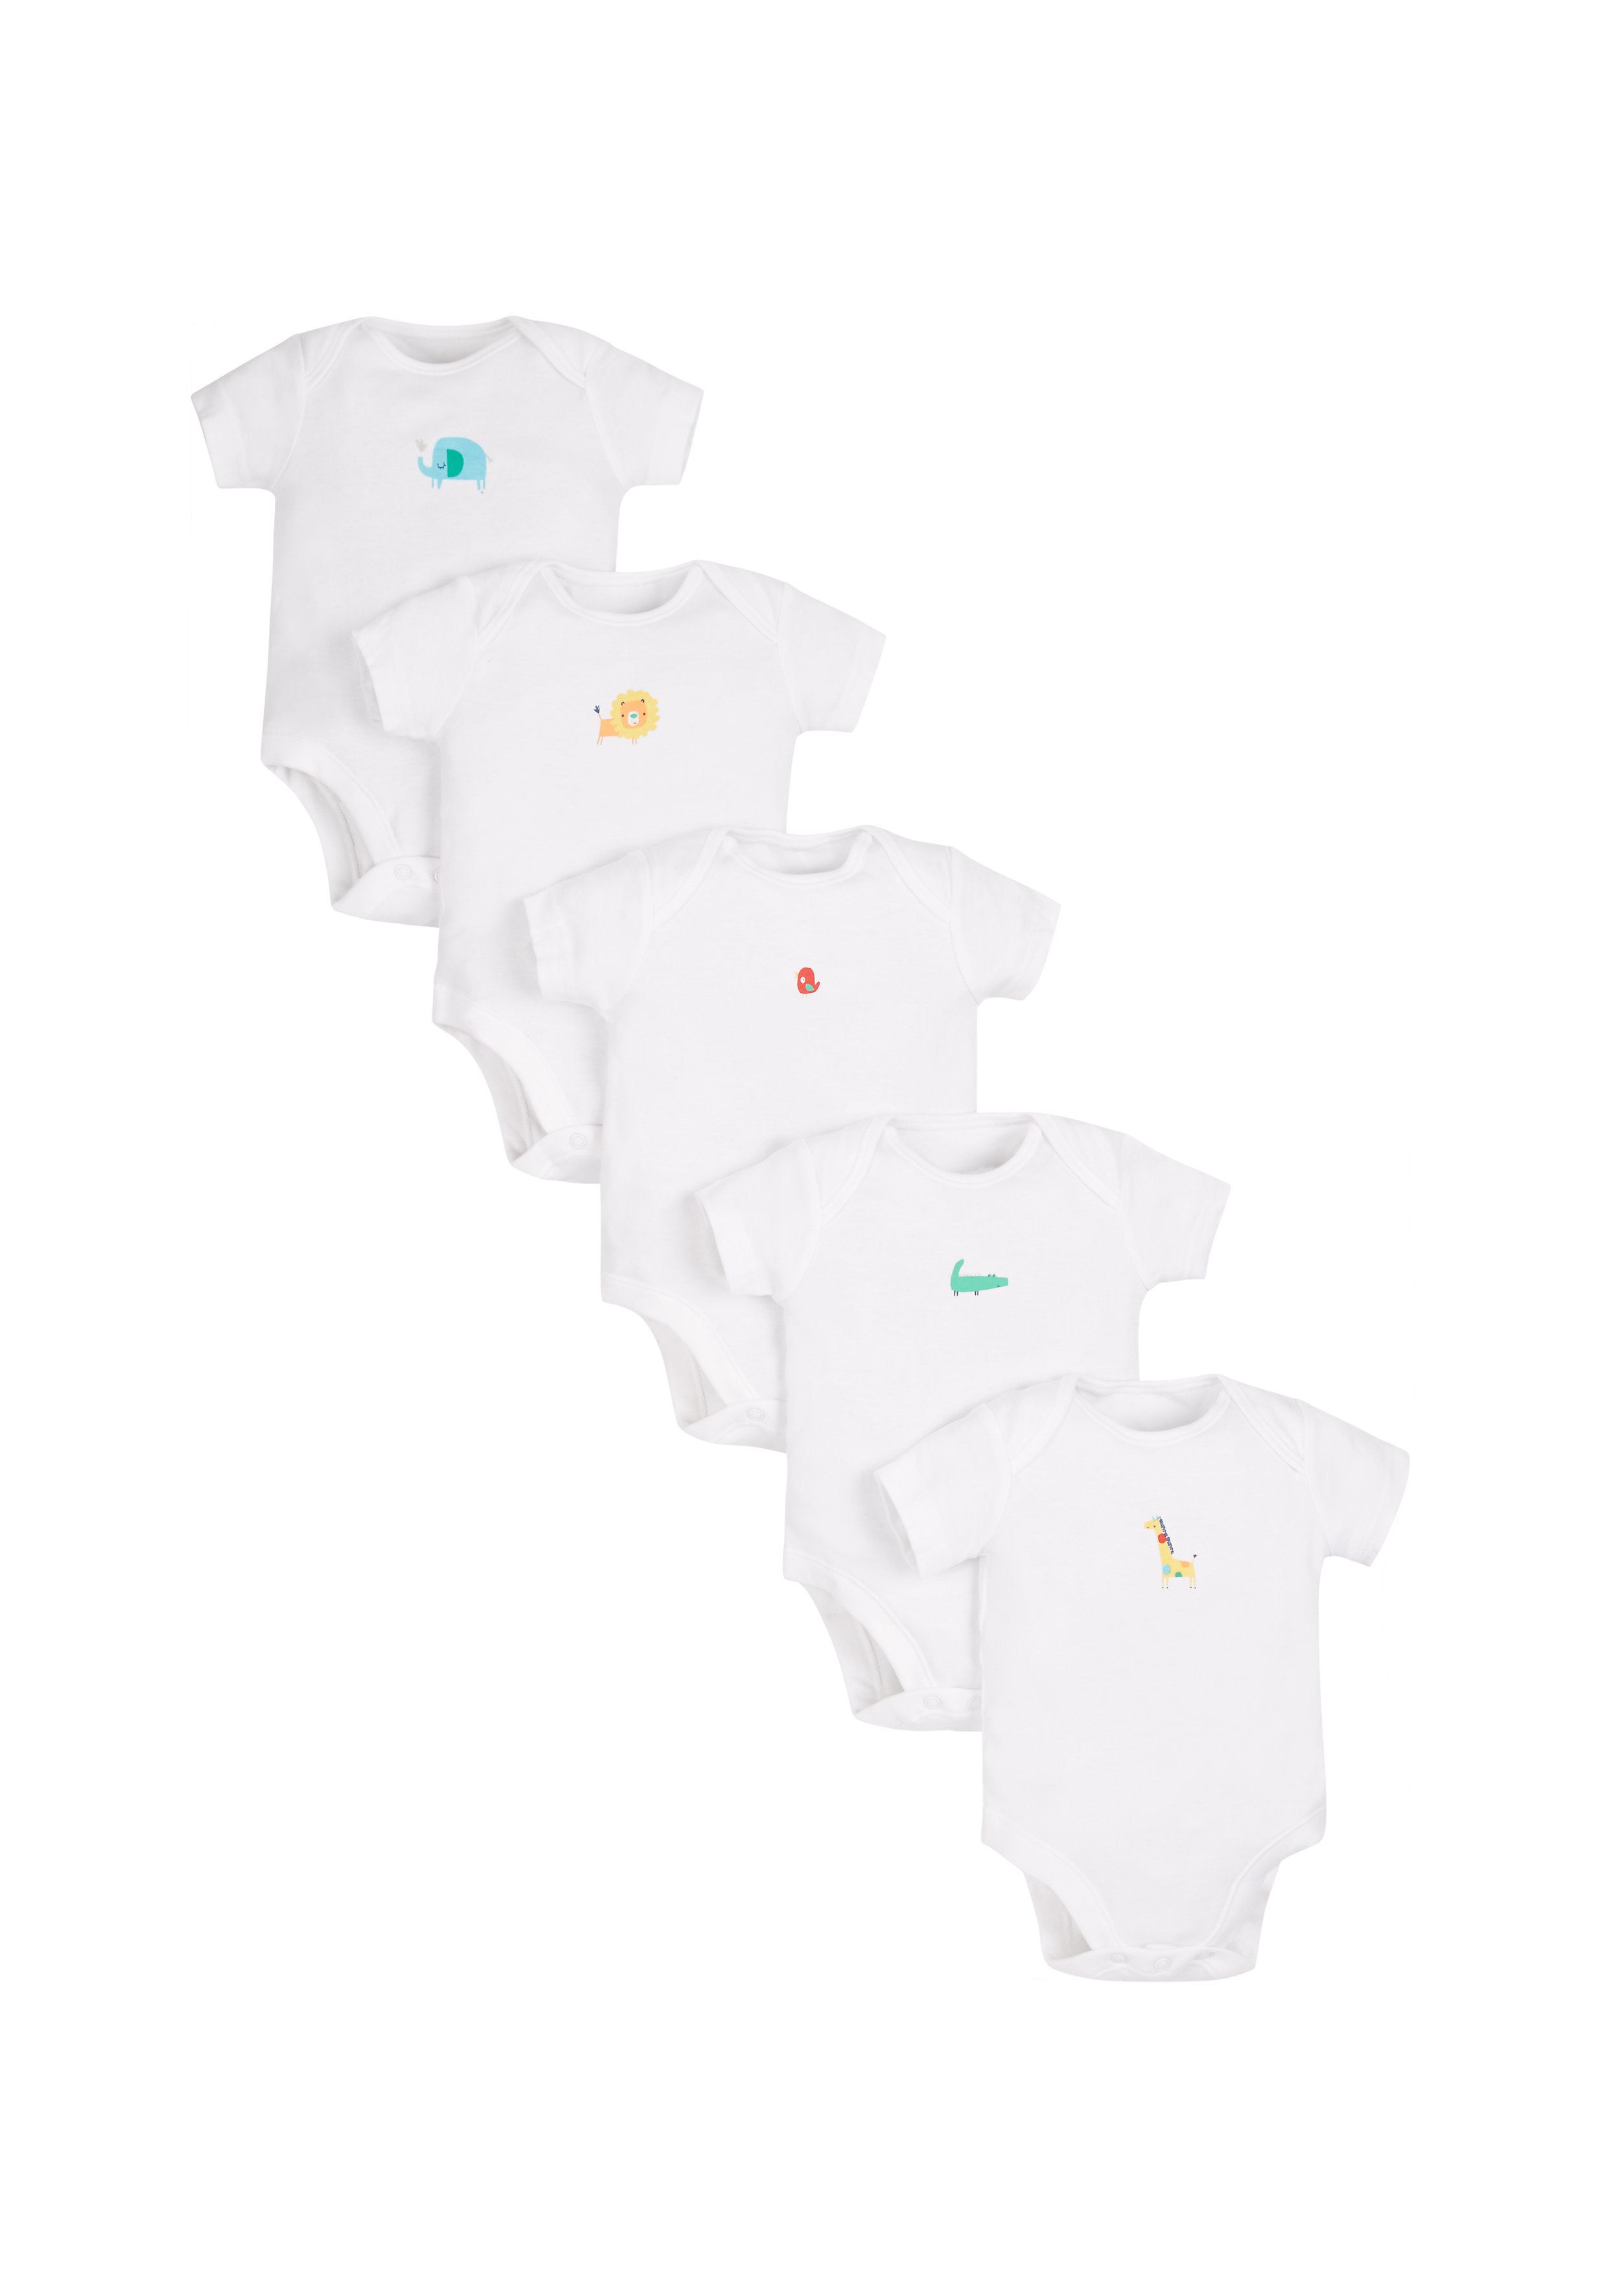 Mothercare | Unisex Jungle Bodysuits - Pack Of 5 - White